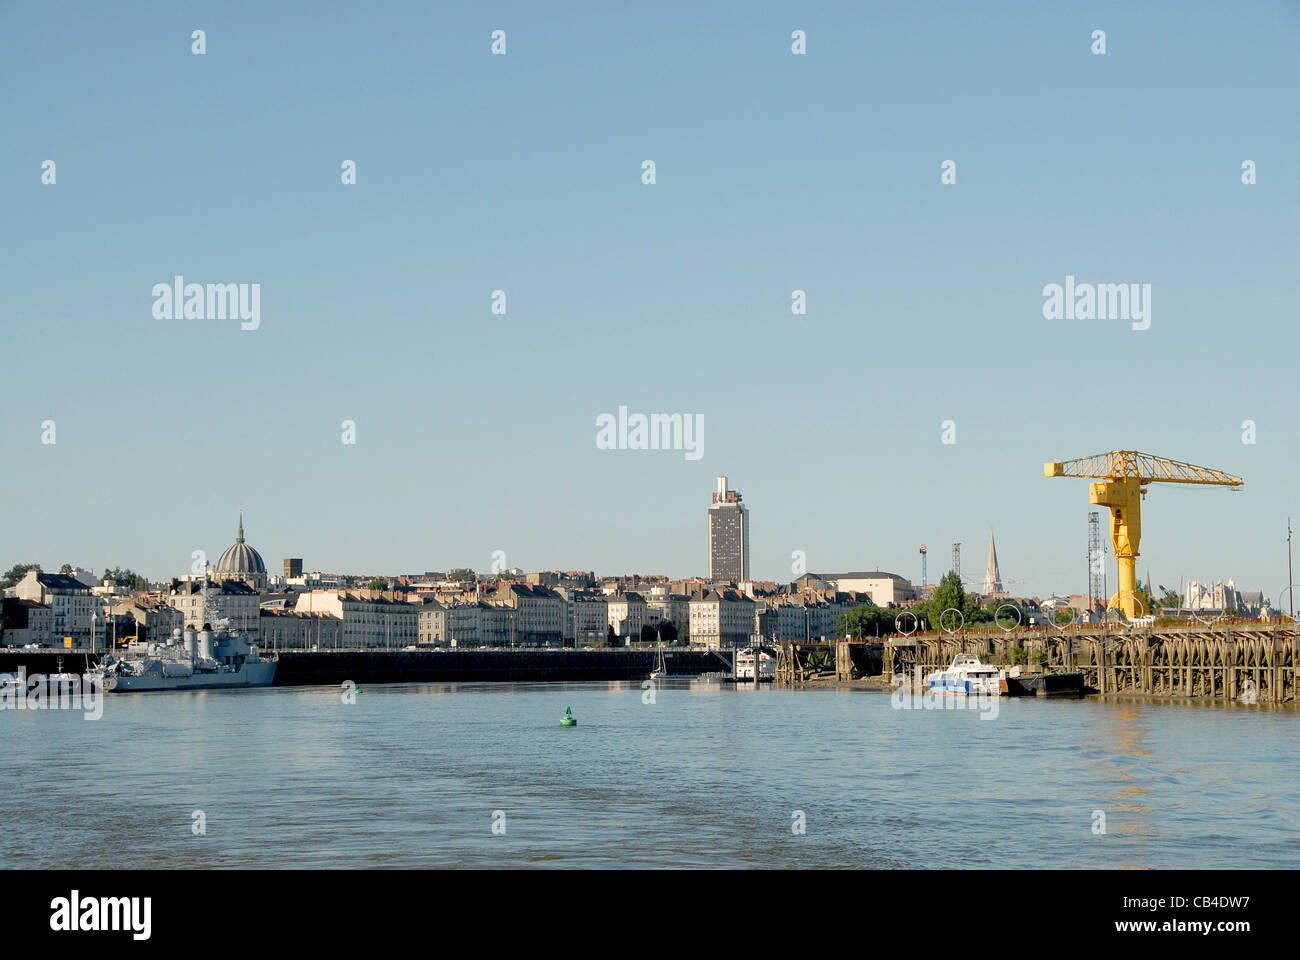 The Quai des Antilles (r.) on the Île de Nantes, a revitalised port area on a Loire island in Nantes, and skyline - Stock Image